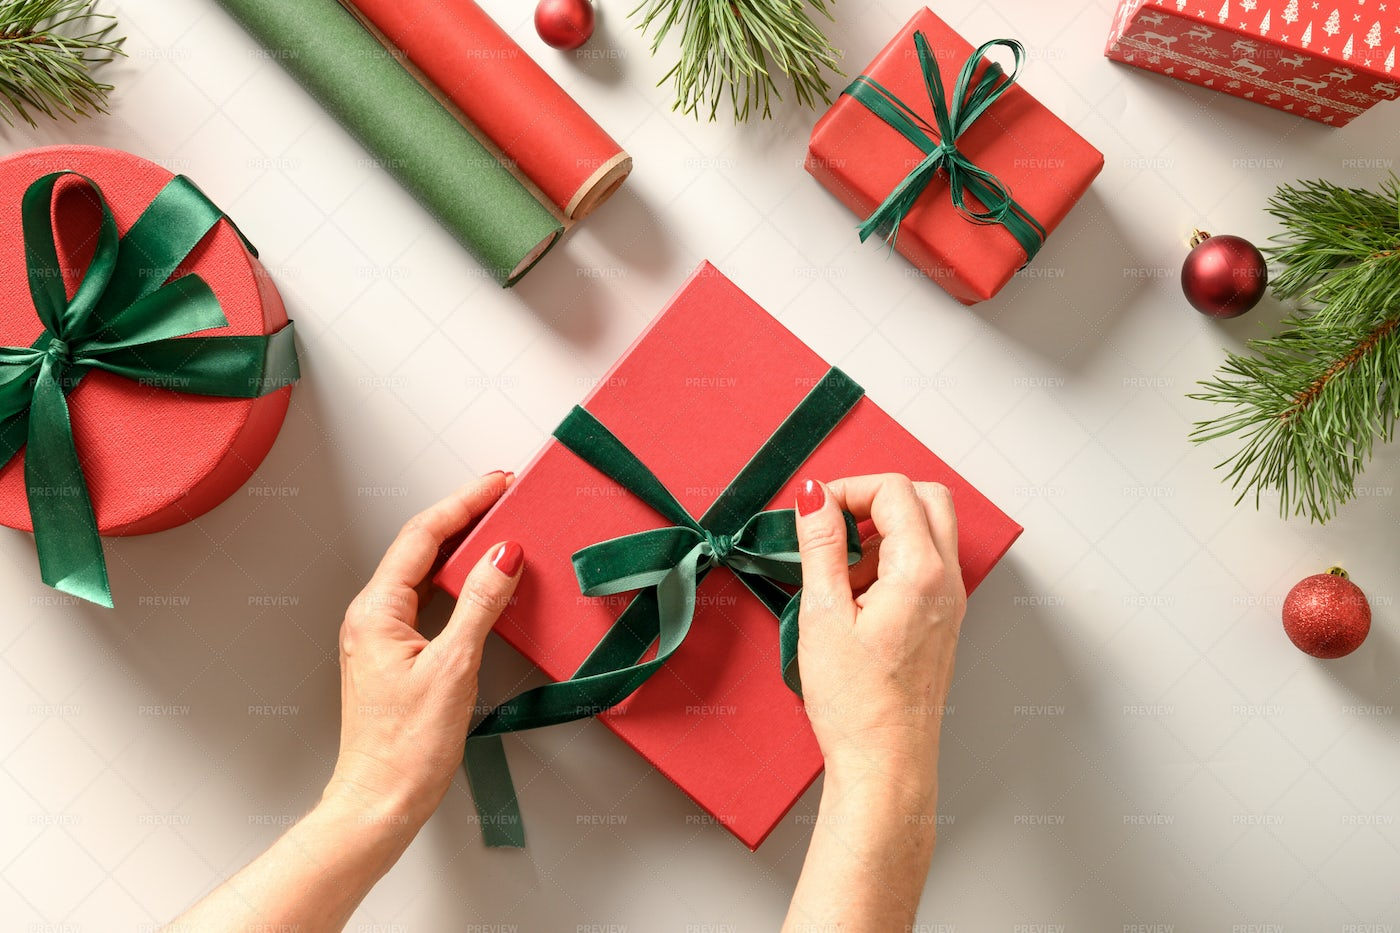 Woman Wrapping Christmas Gifts: Stock Photos